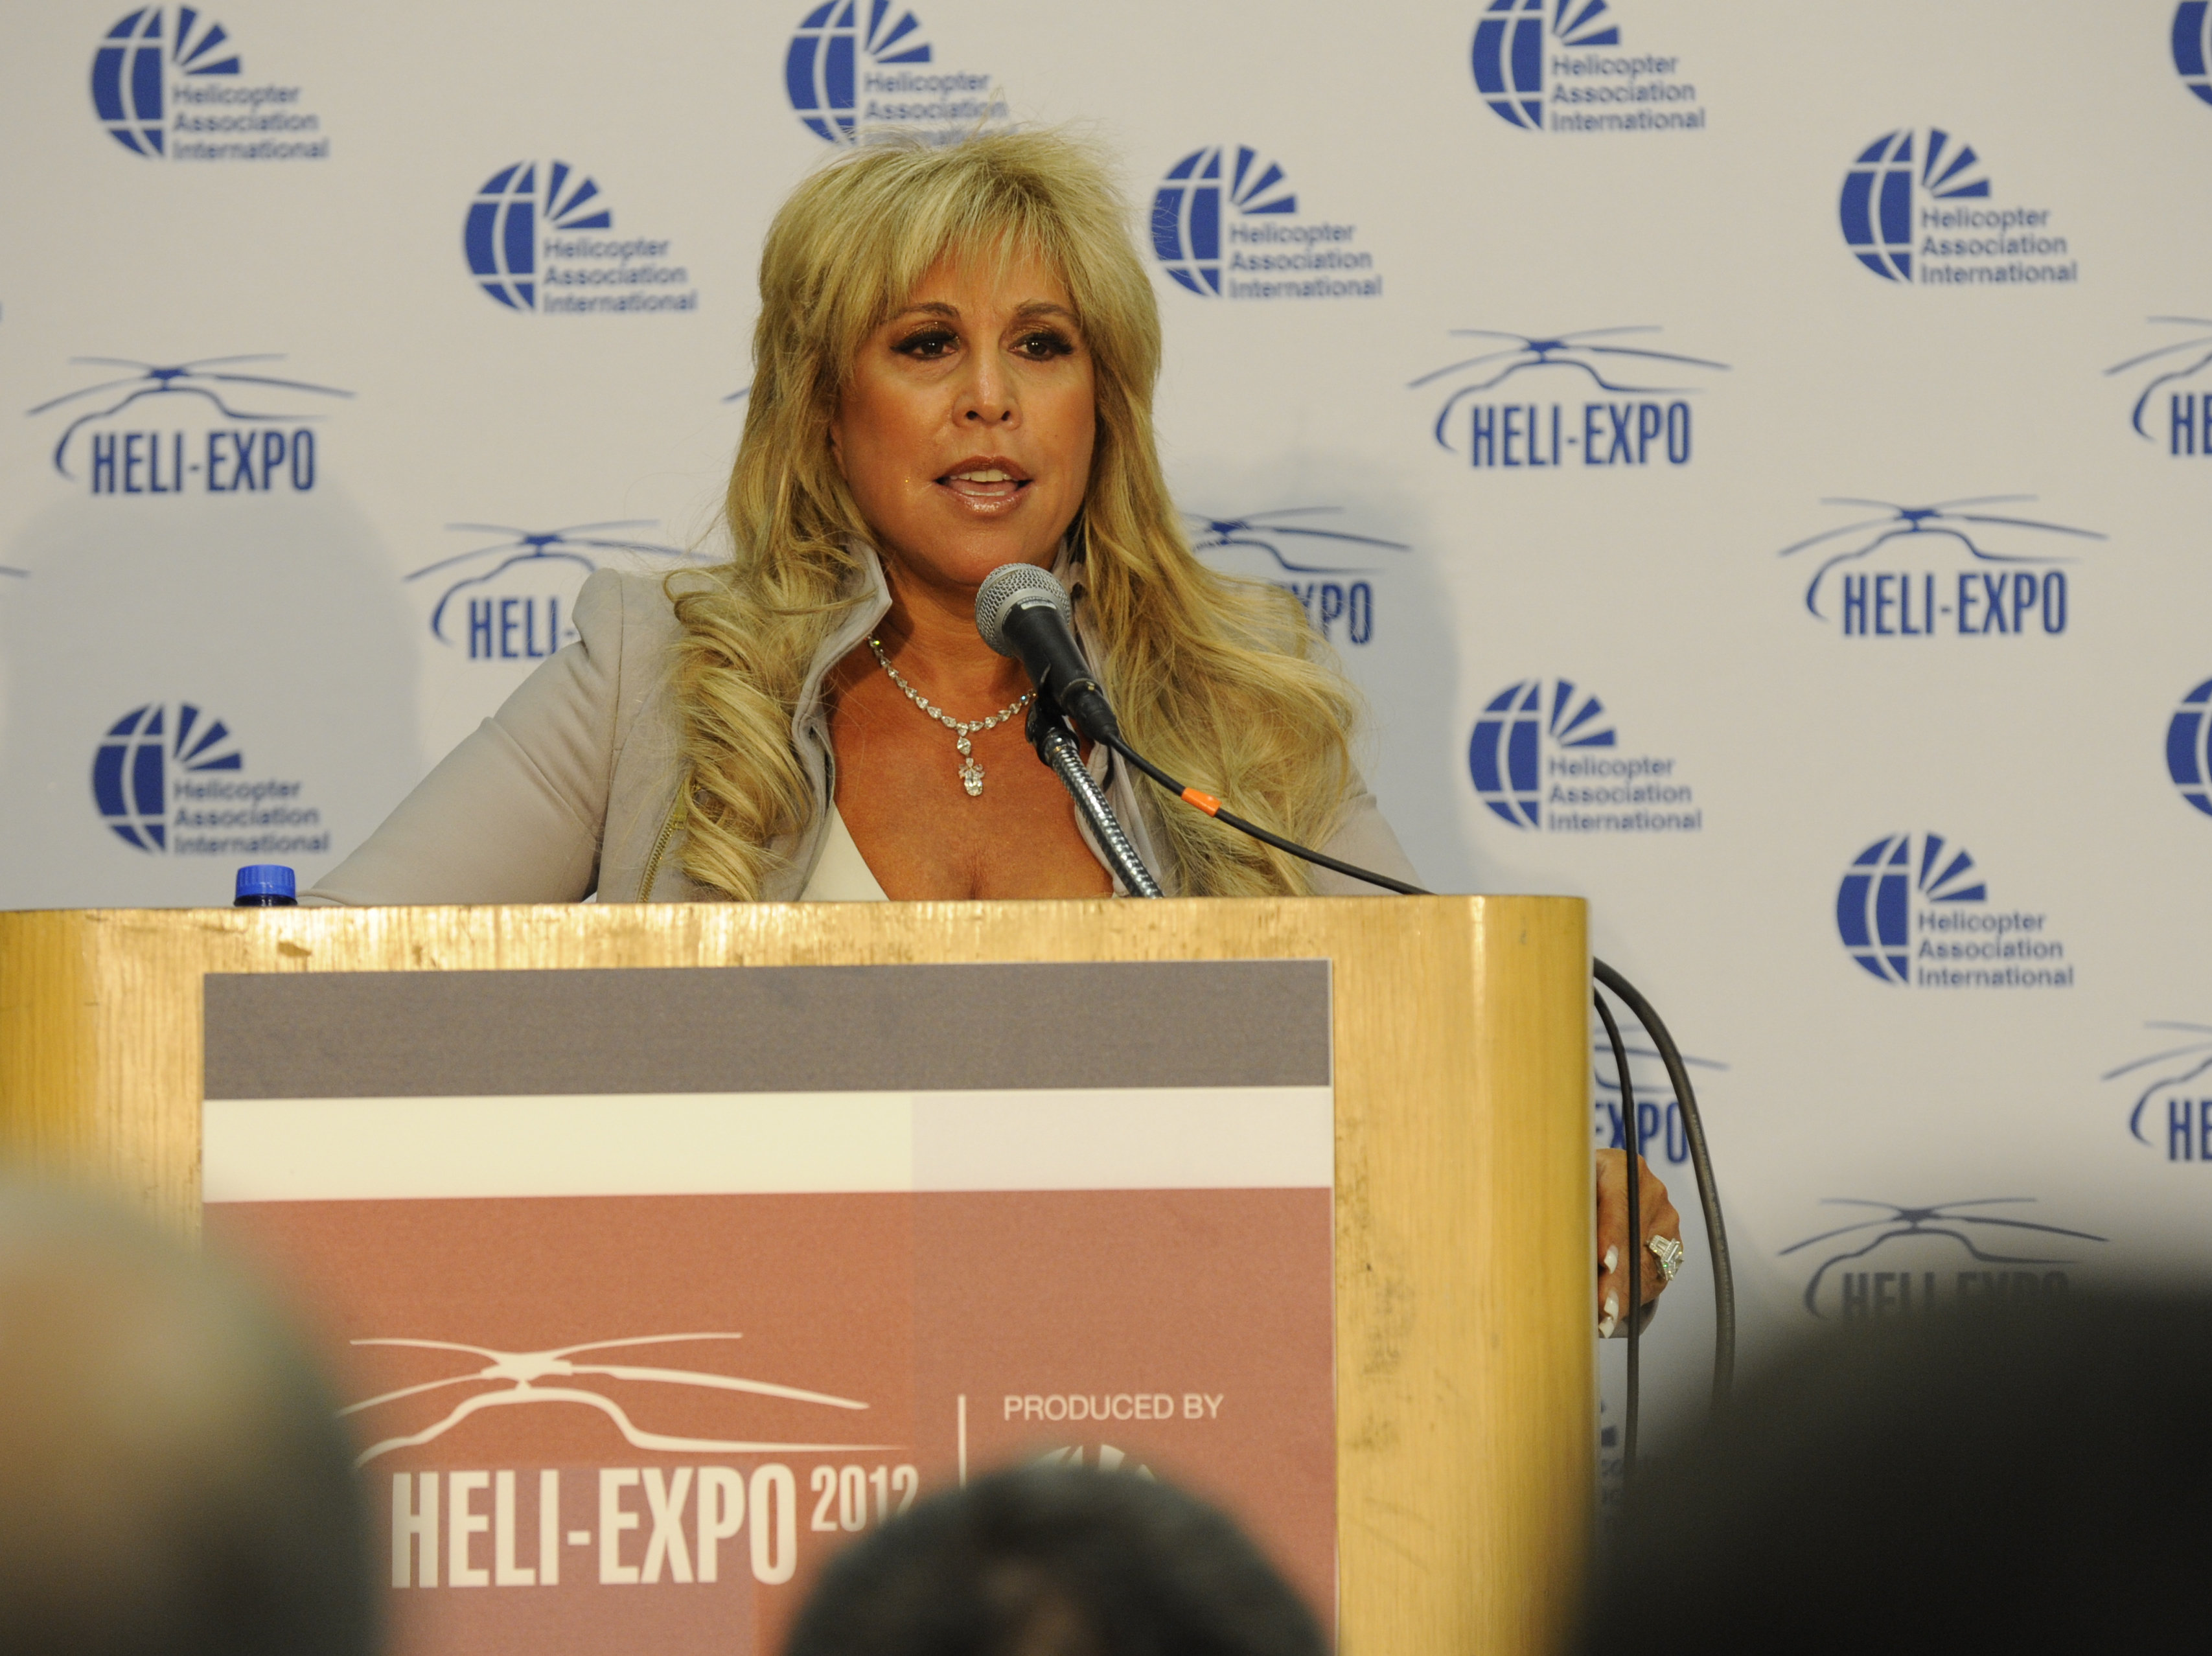 lynn tilton md helicopters with Md Helicopters Ceo Reports Very Good Year on Mdhelicopters likewise MDHelicopters likewise Tilton likewise 309181676507000832 additionally Sec Accuses Diva Of Distressed Lynn Tilton Of Nearly 200 Million Fraud.